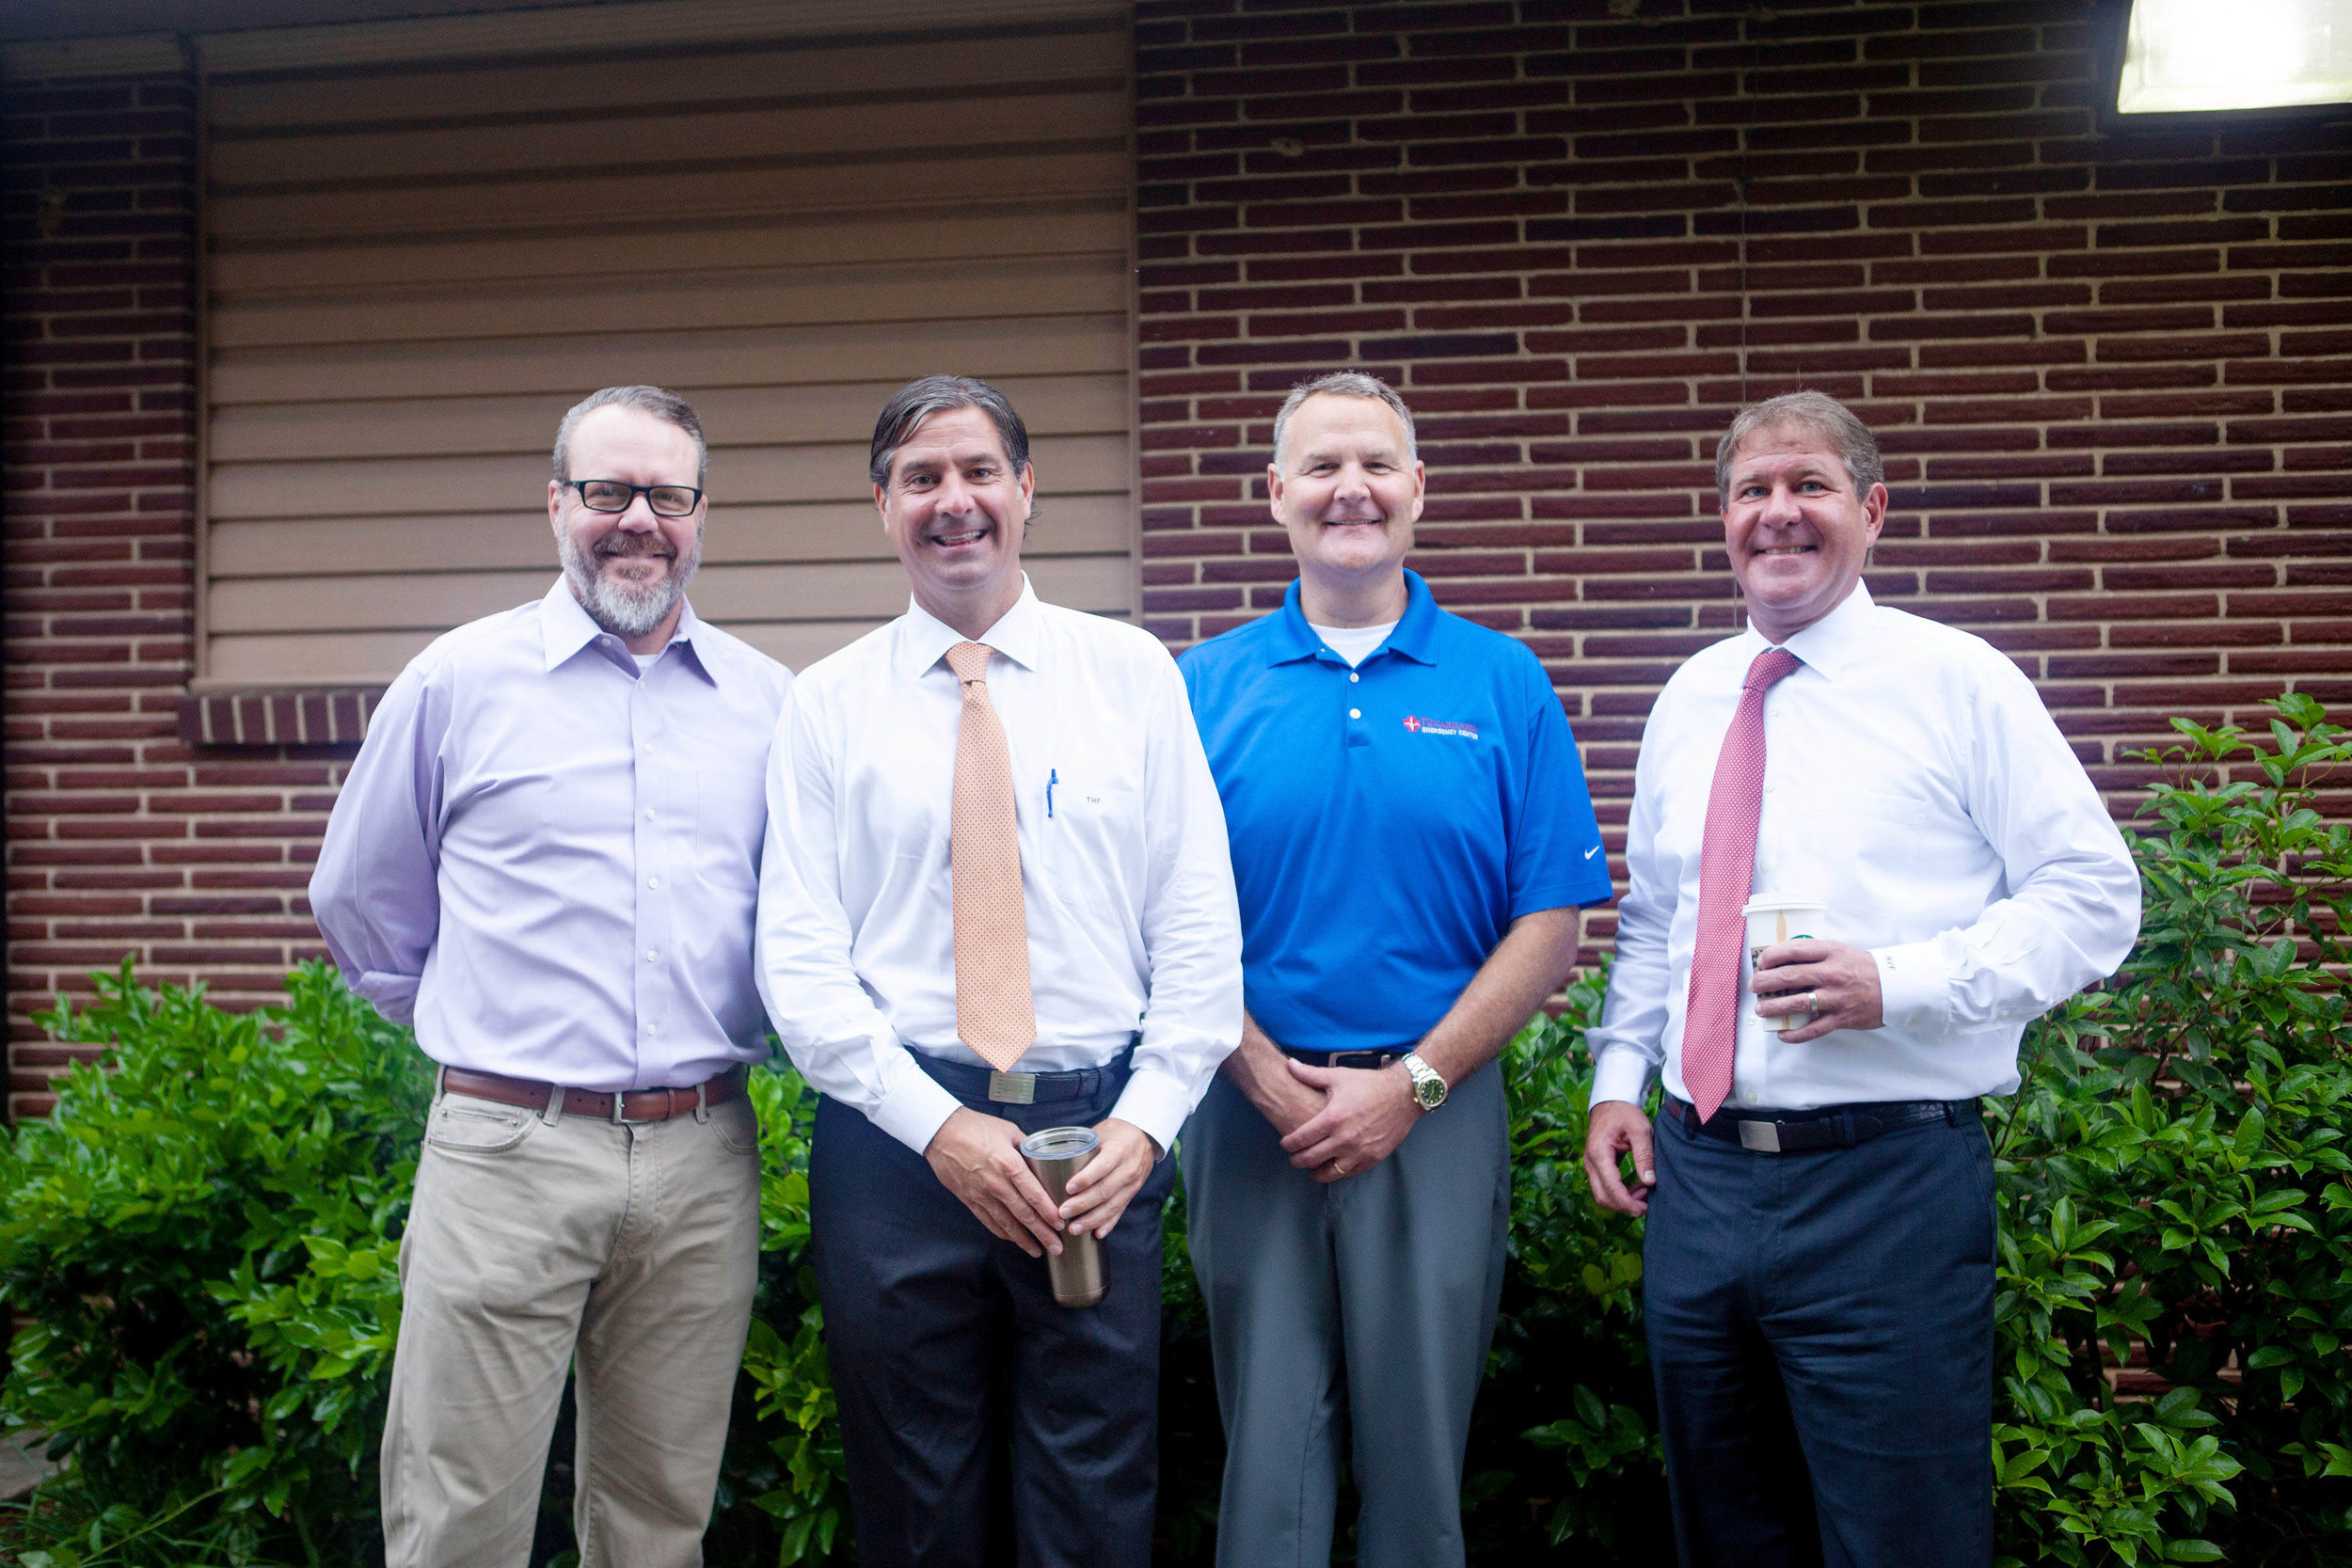 Dr. Erik Jacobsen, Thomas Fuqua, Dr. Matt Young and Vickers Fuqua